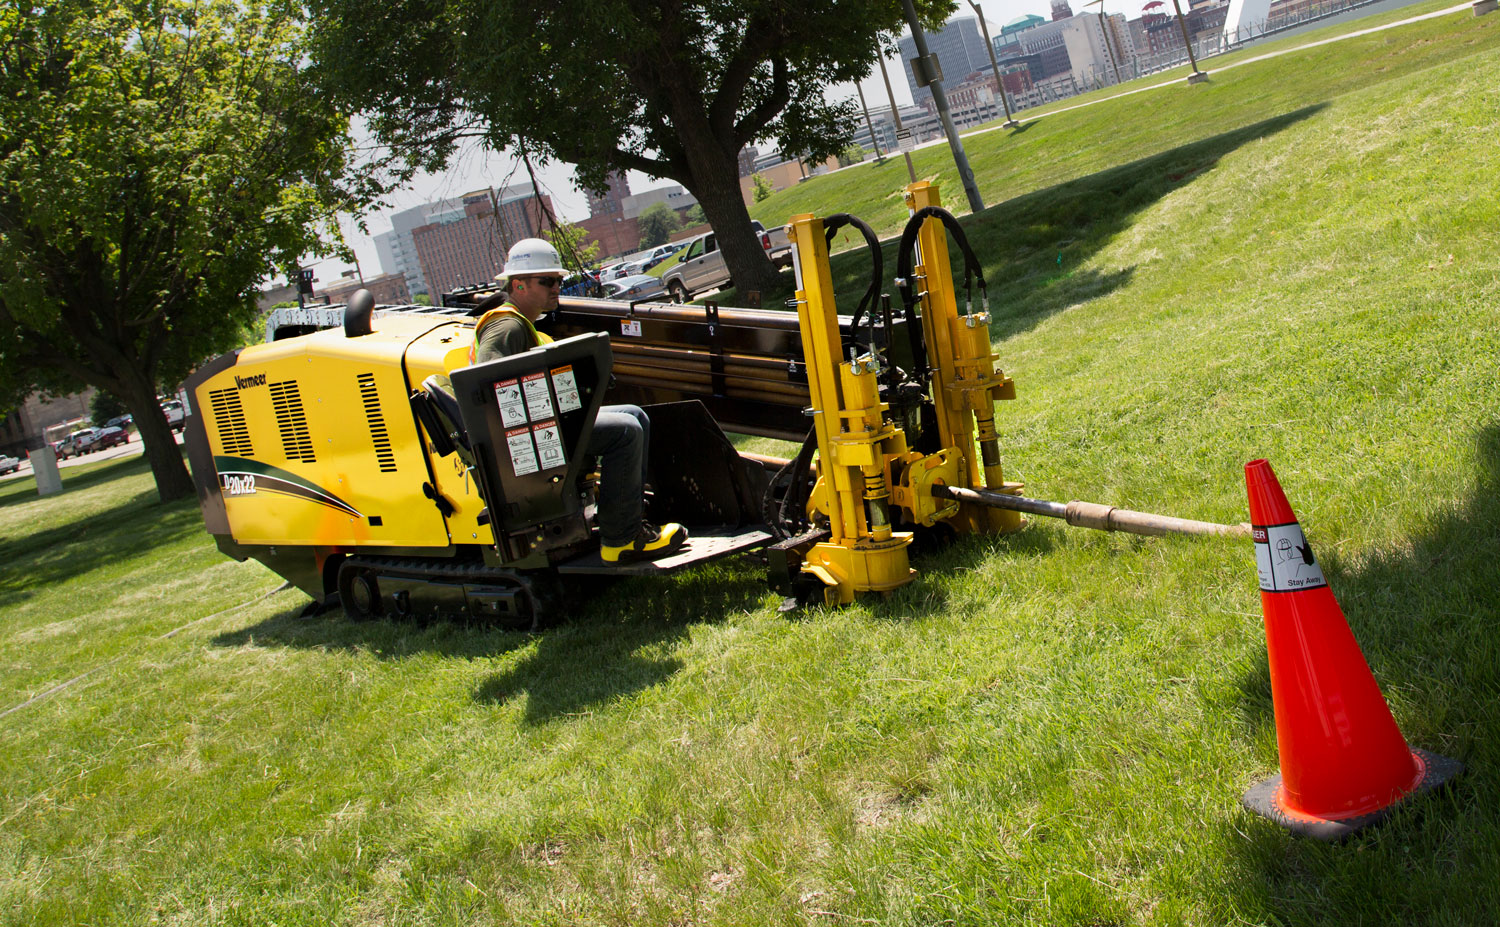 Vermeer D20x22 S3 horizontal directional drill in action